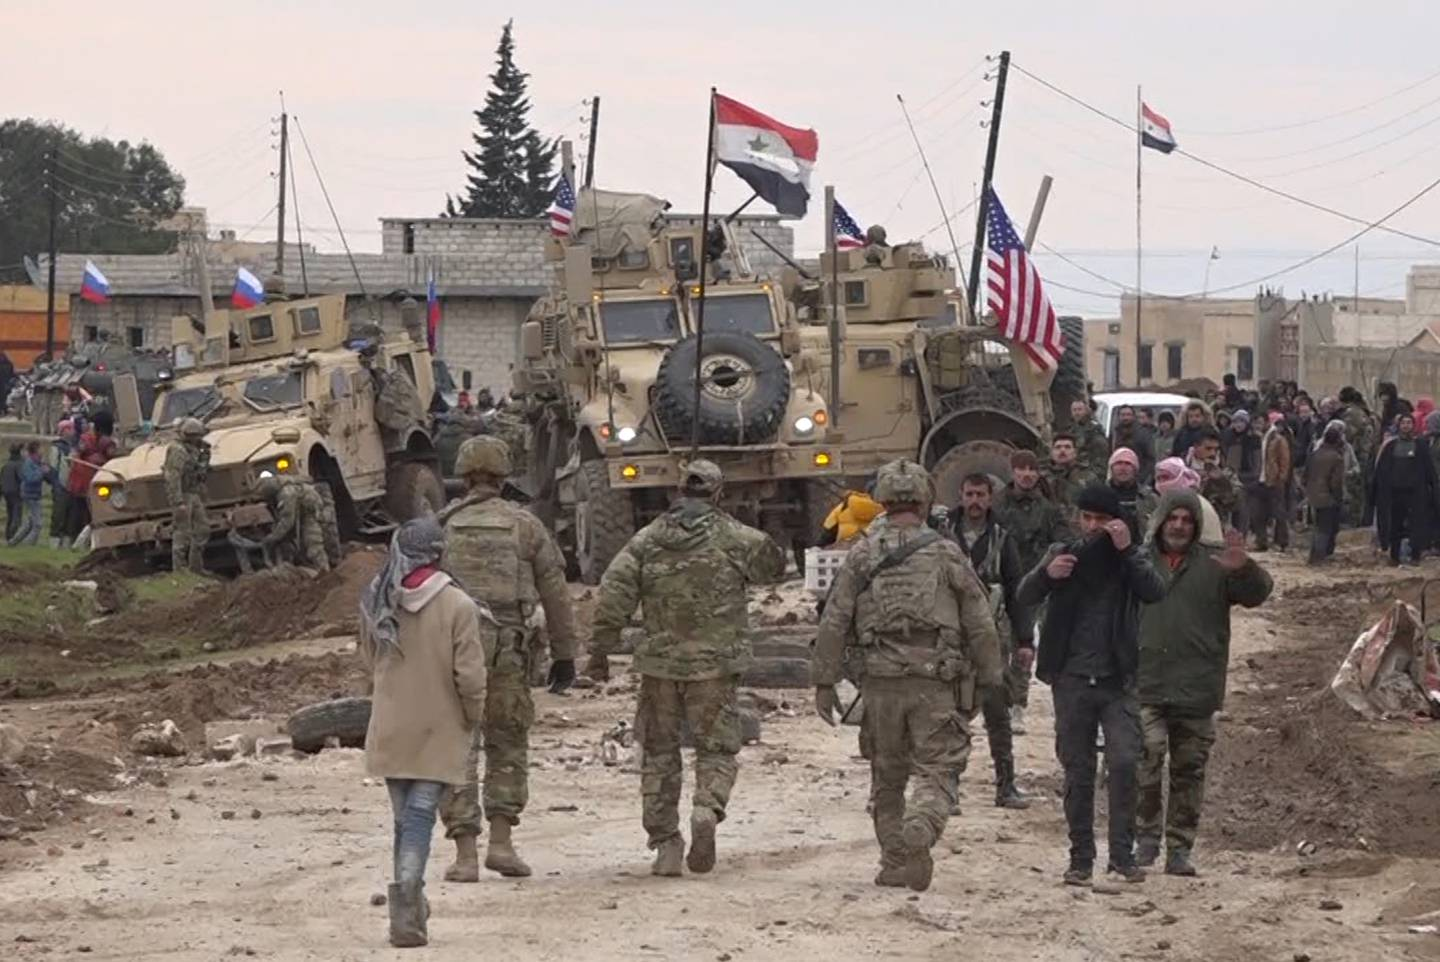 American military convoy in Syria, Russian, Syrian troops